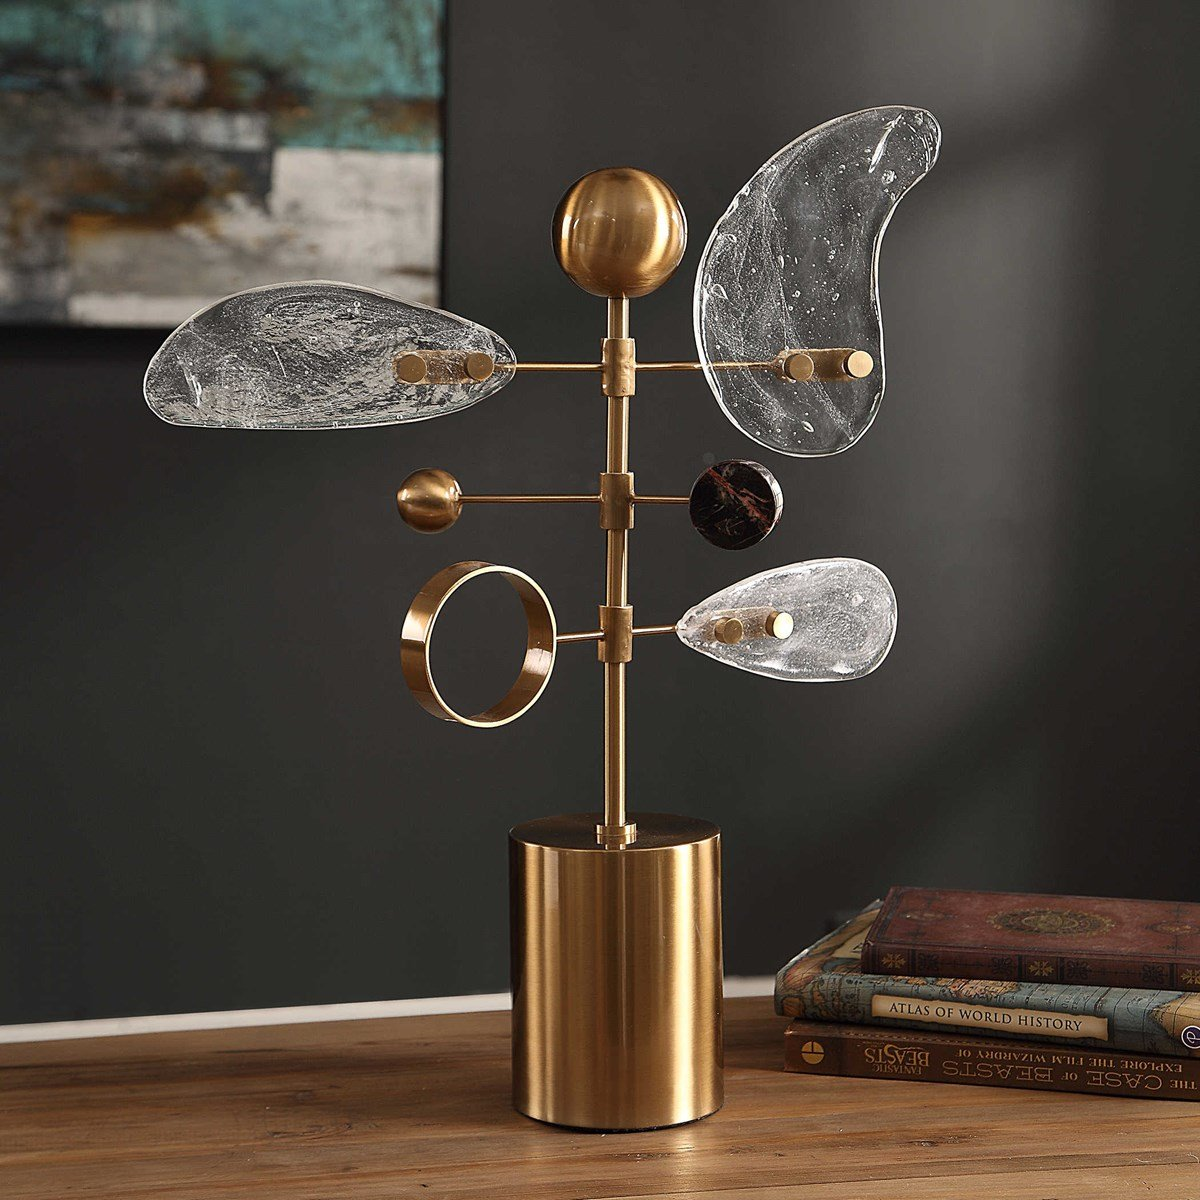 Gold abstract sculpture with geometric shapes